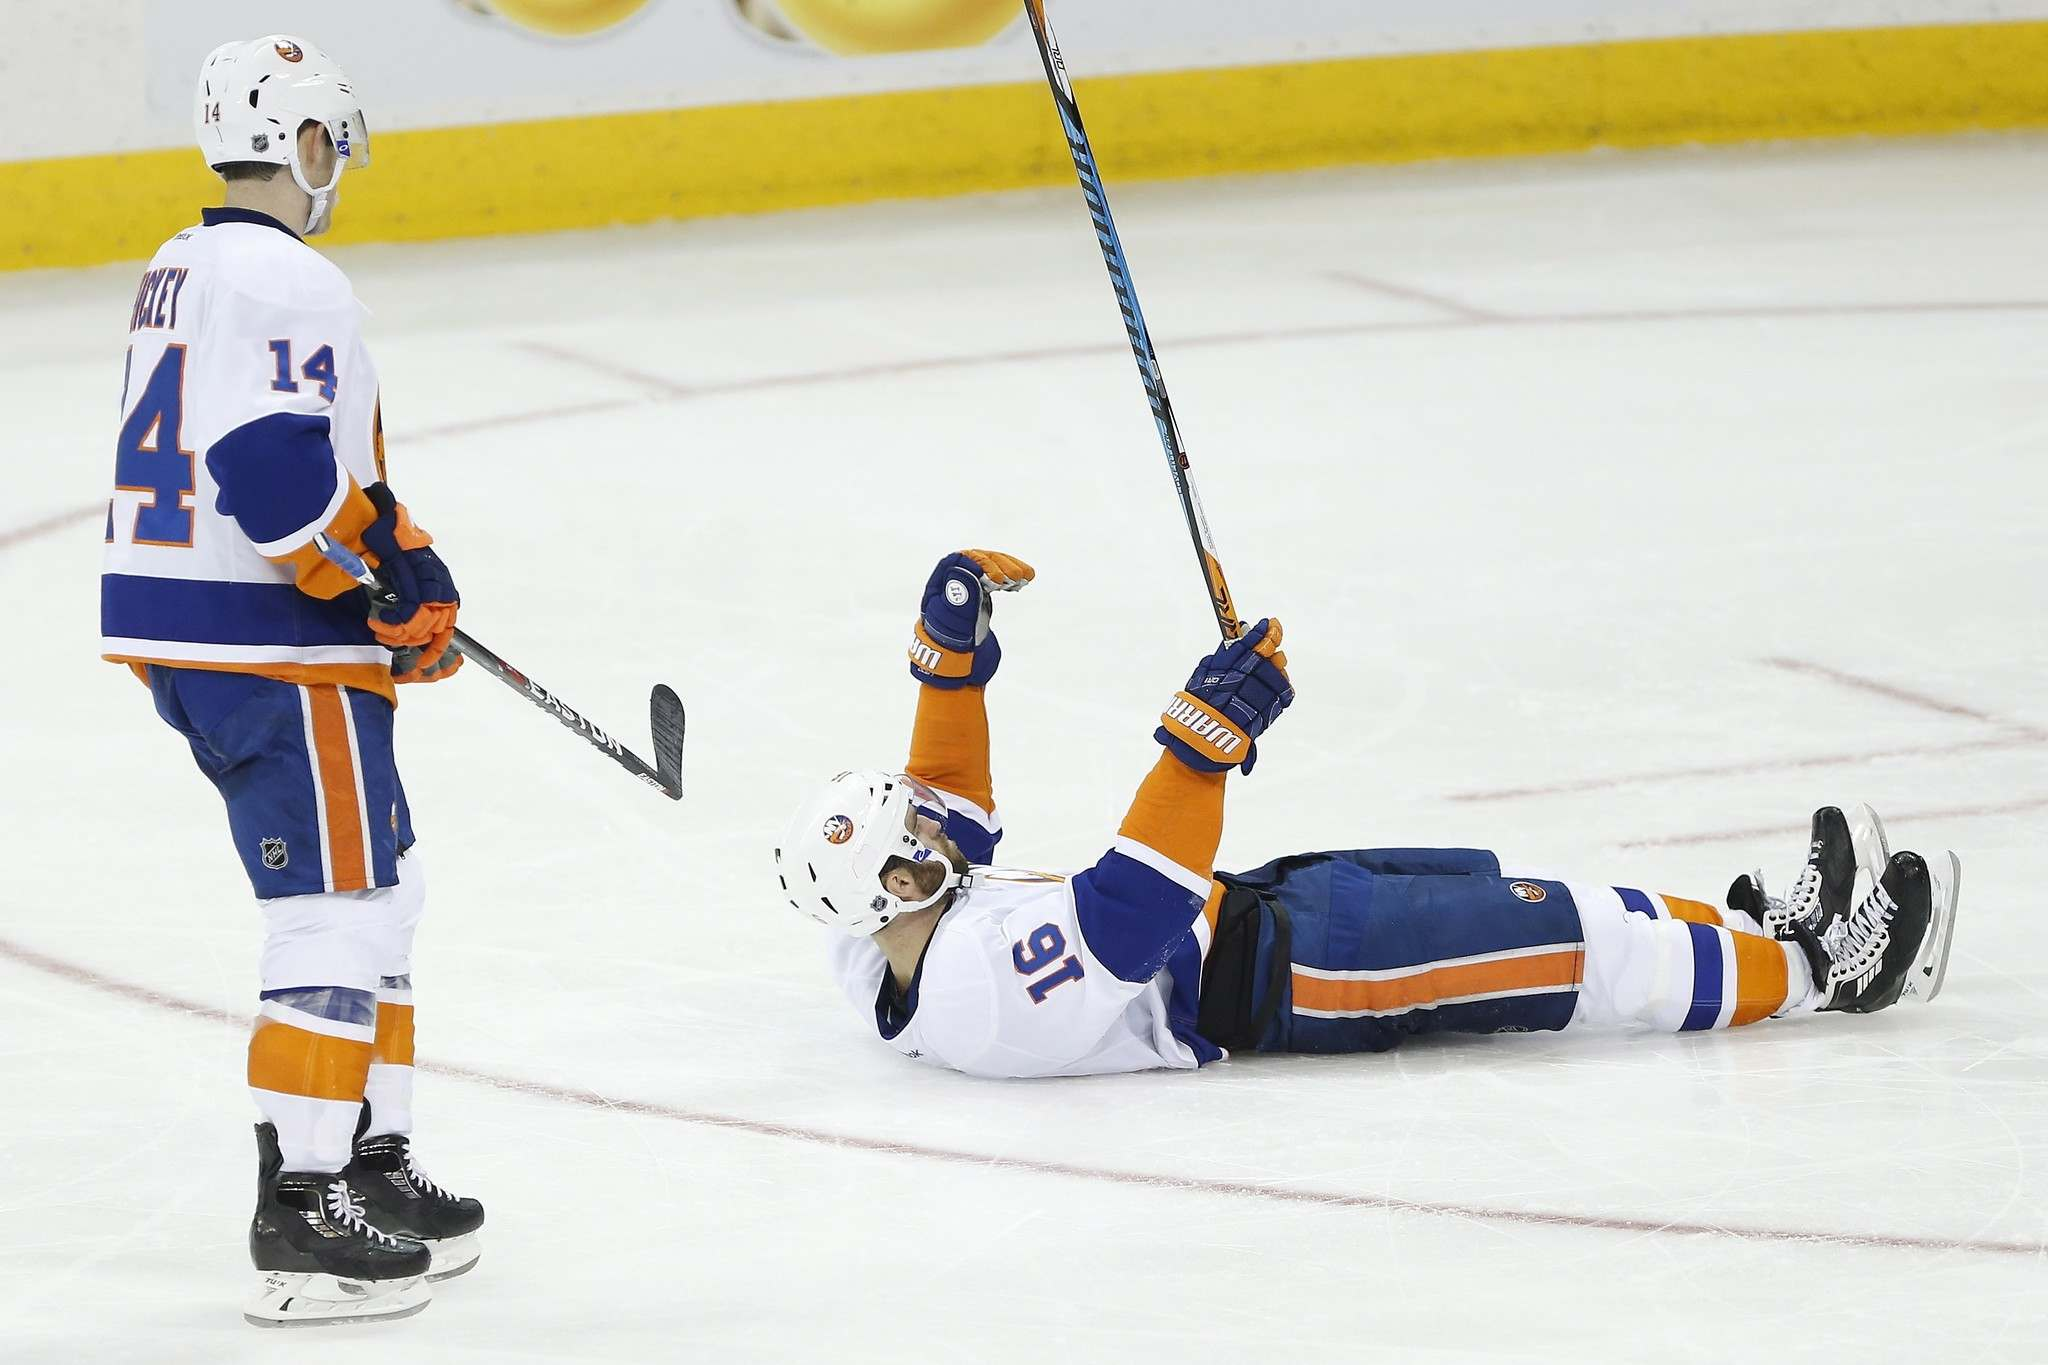 JOHN WOODS / THE CANADIAN PRESS</p><p>New York Islanders' Andrew Ladd (16) celebrates his goal against the Winnipeg Jets as Thomas Hickey (14) looks on during the third period.</p>